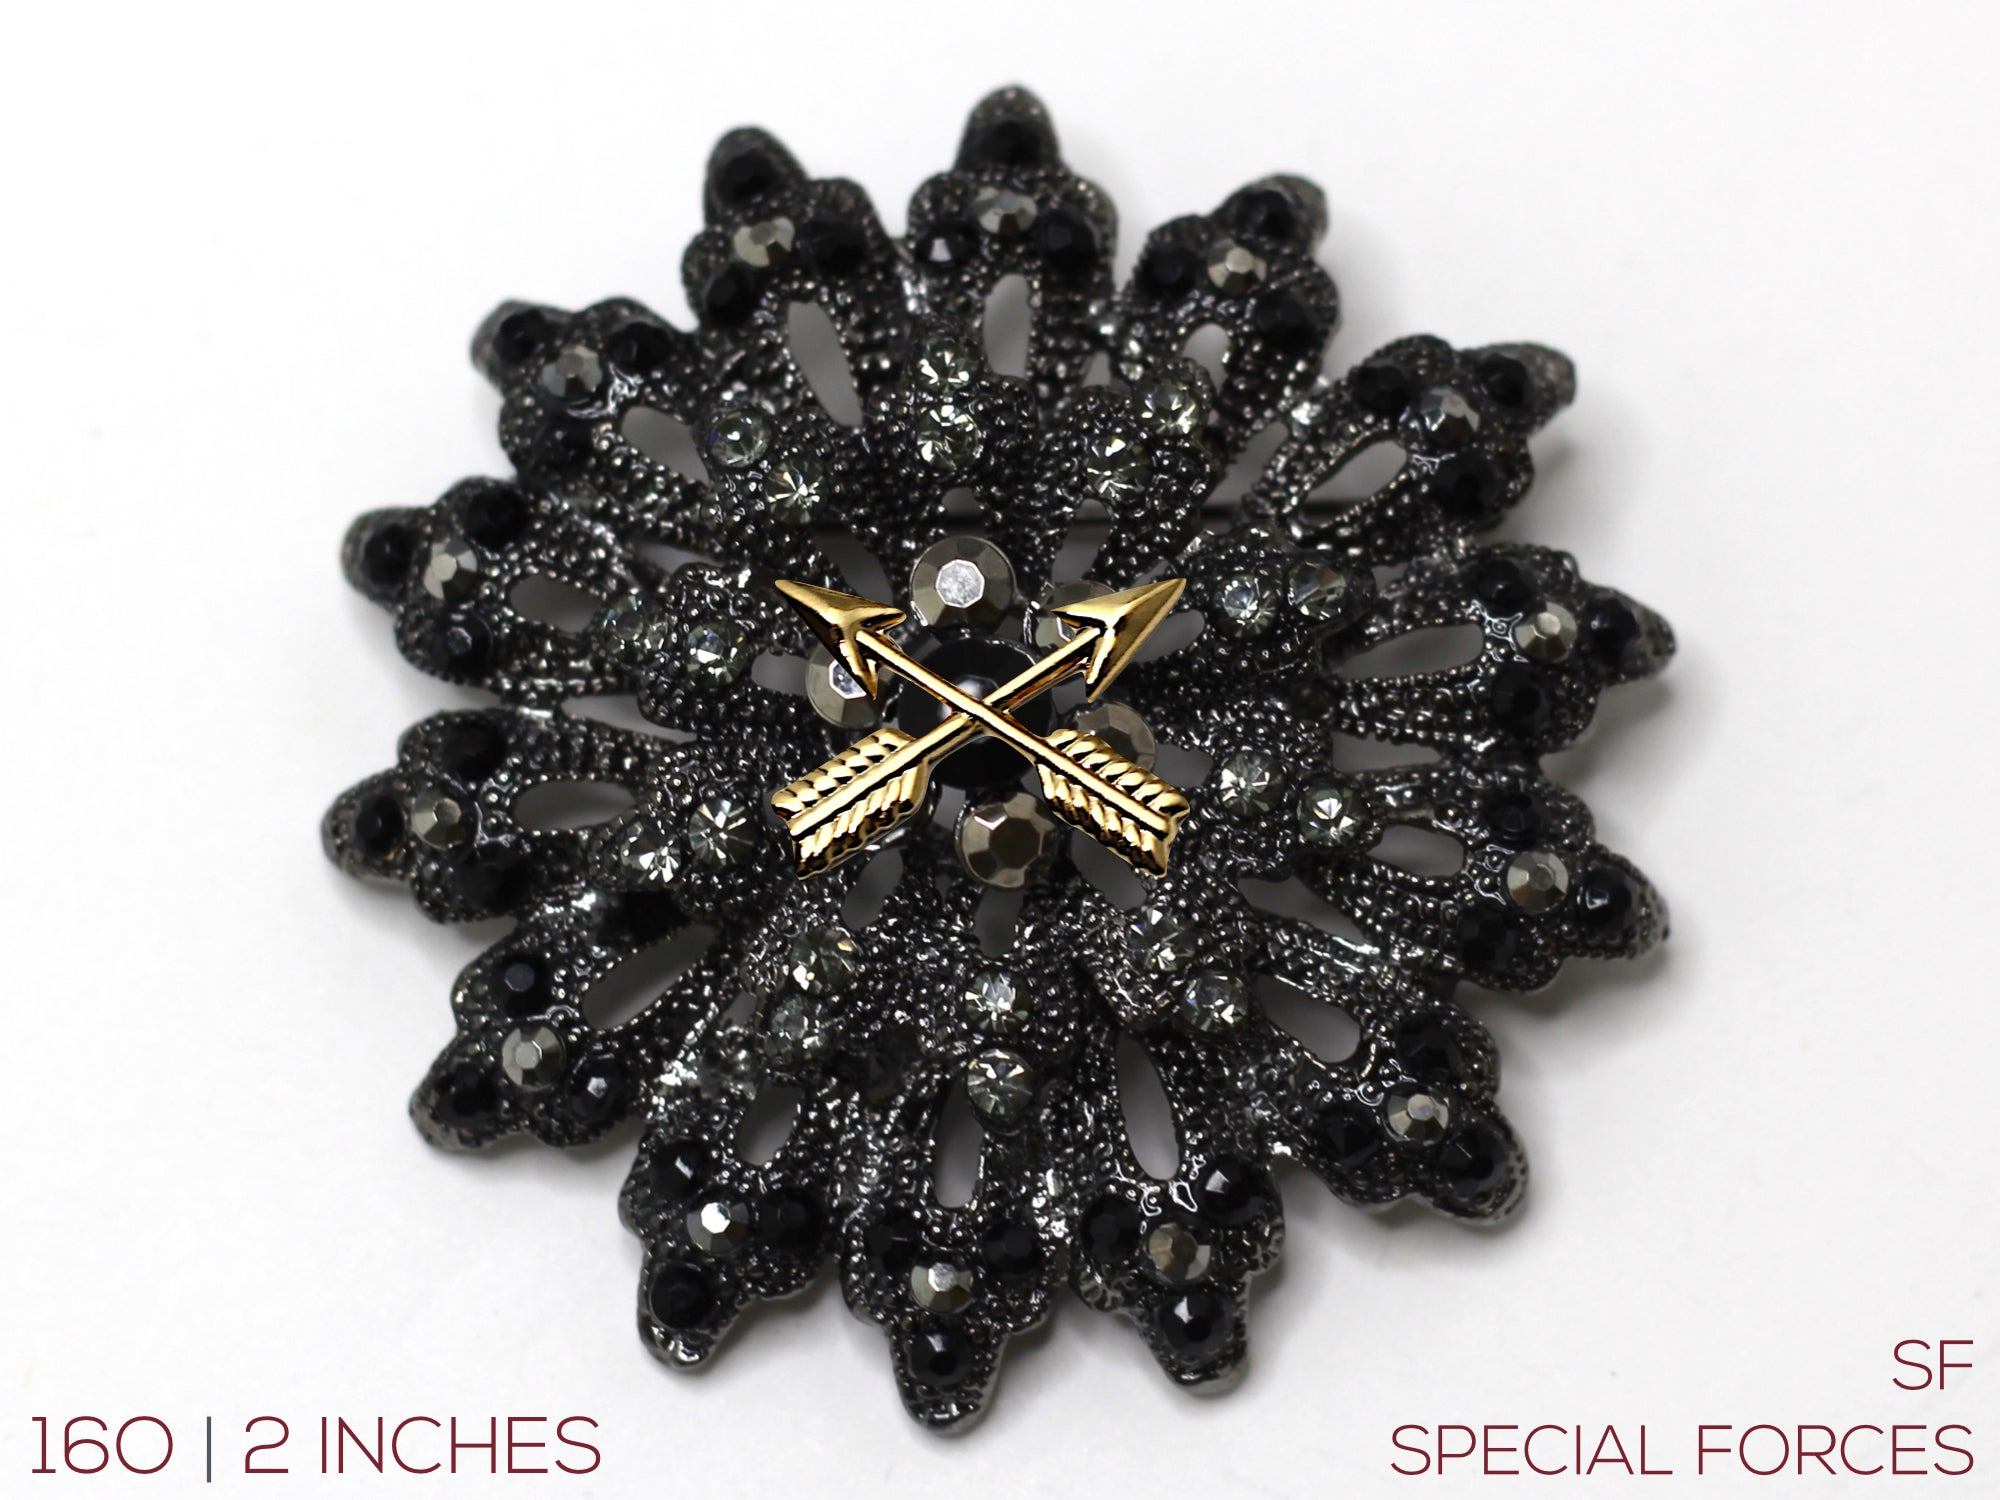 Special Forces Brooch